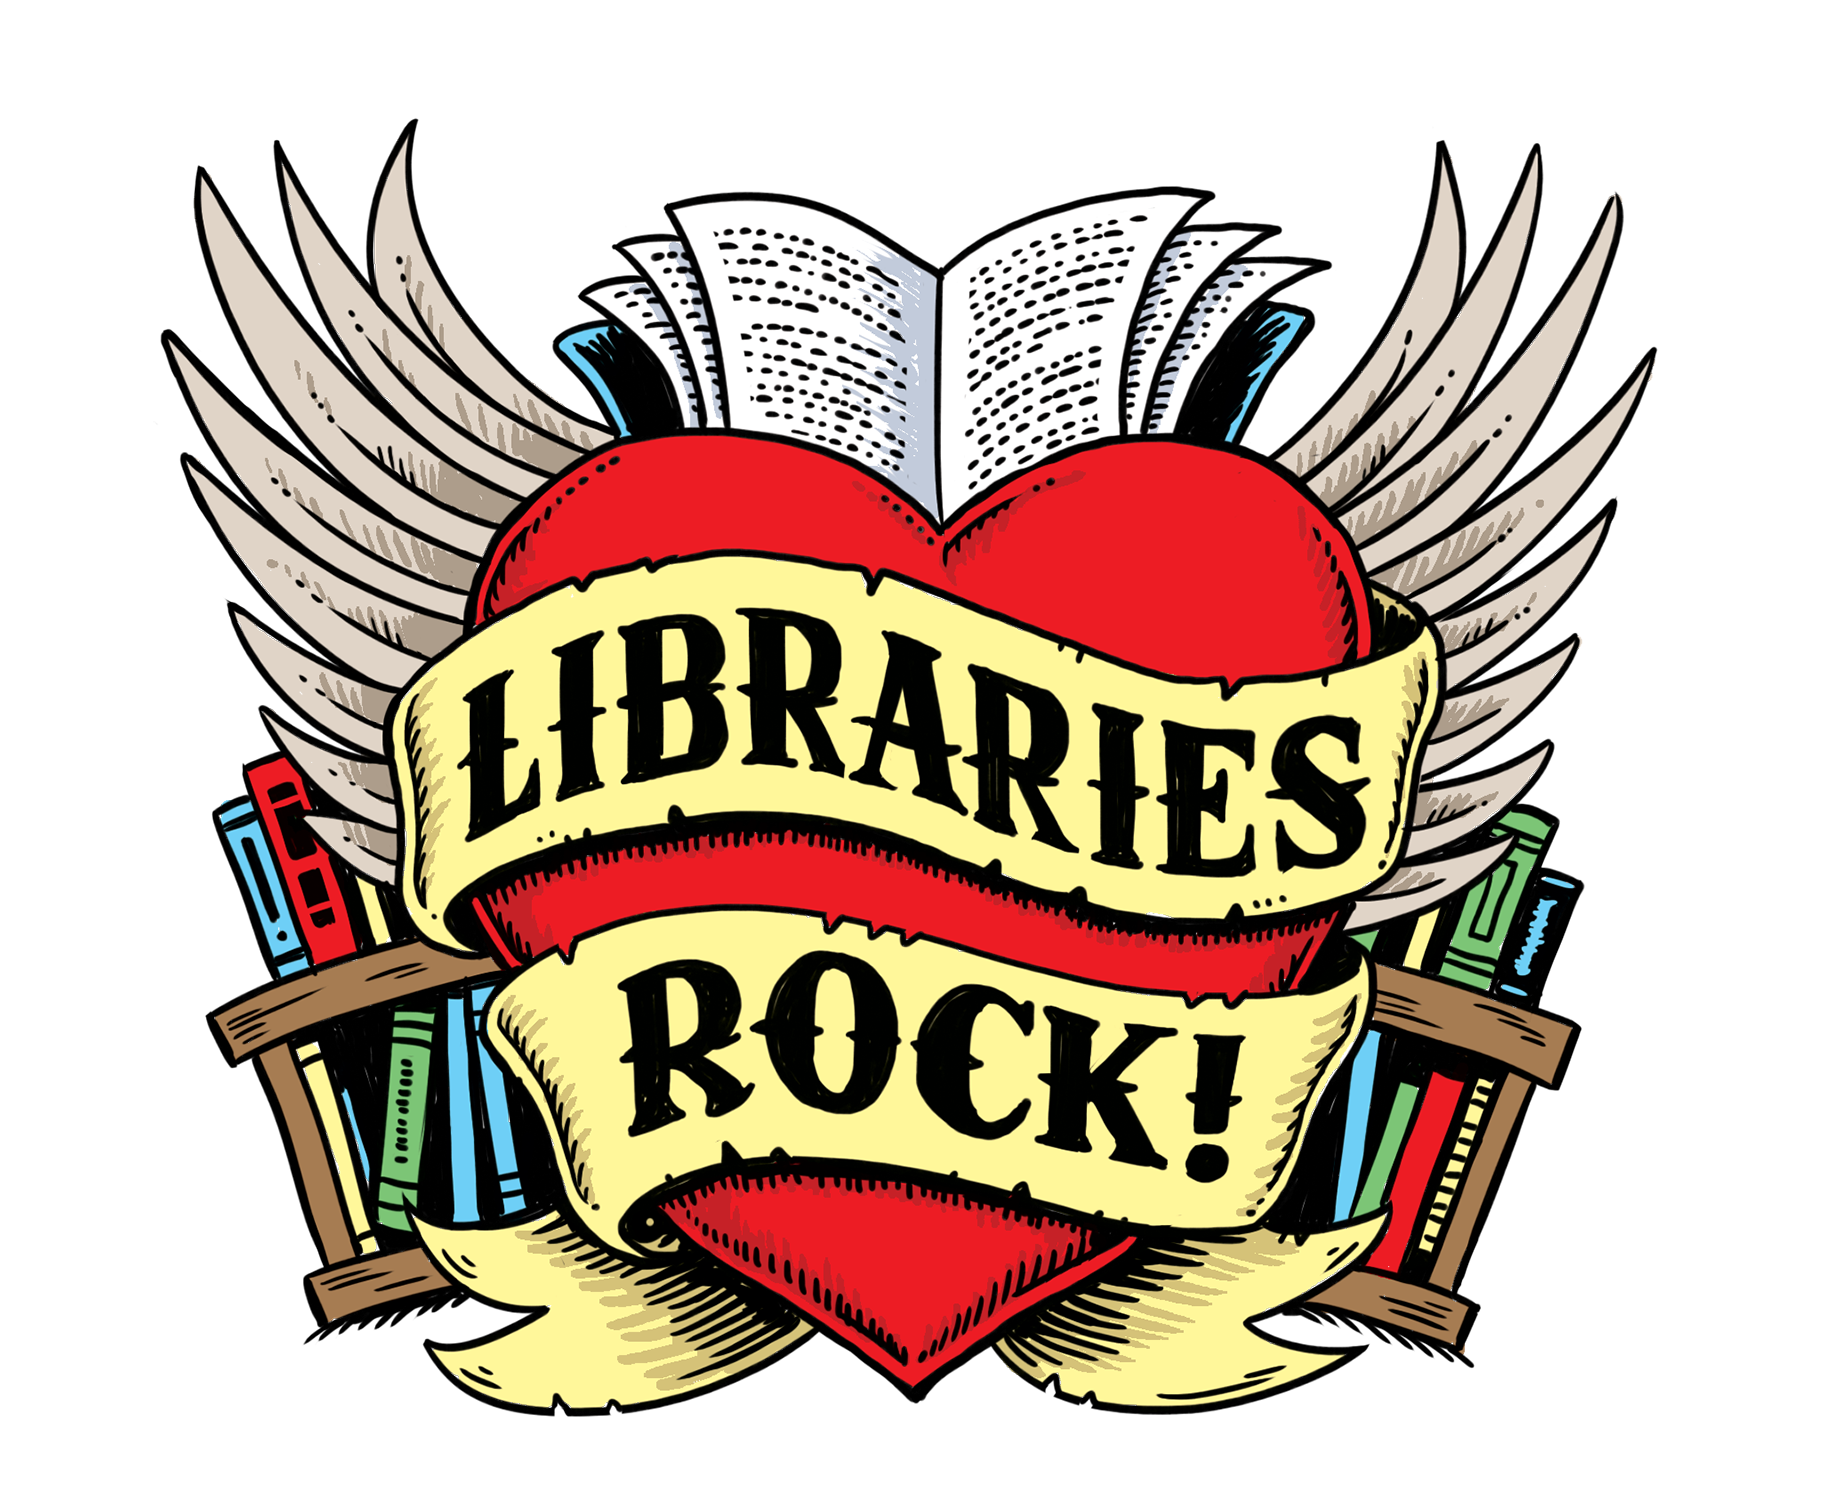 LIBRARIES ROCK! Mehndi & Manicures - Grades 6-12, WED, JUNE 27, 7:00-8:30PM